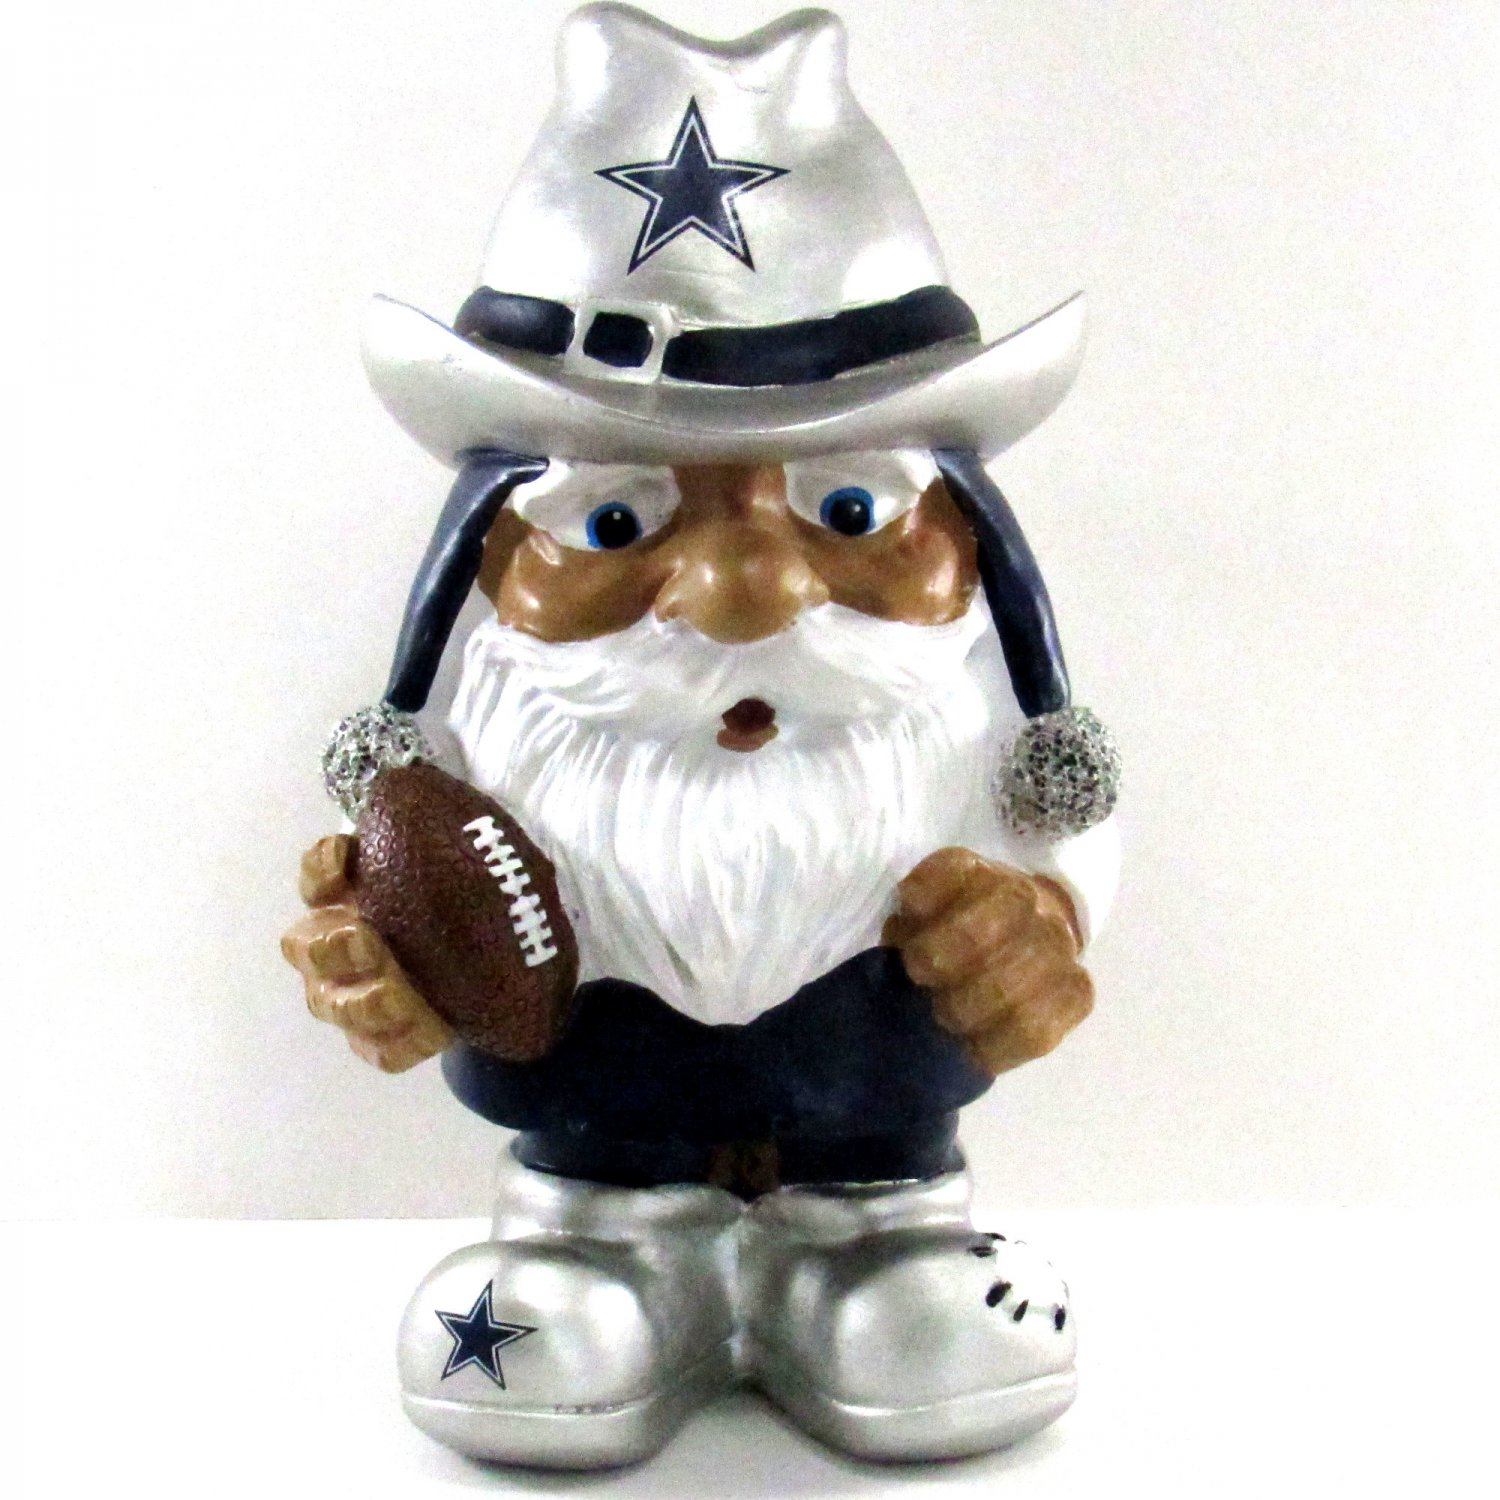 Garden Gnome Dallas Cowboy's Mad Hatter Series 8 Inches Silver Cowboy Hat Forever Collectibles